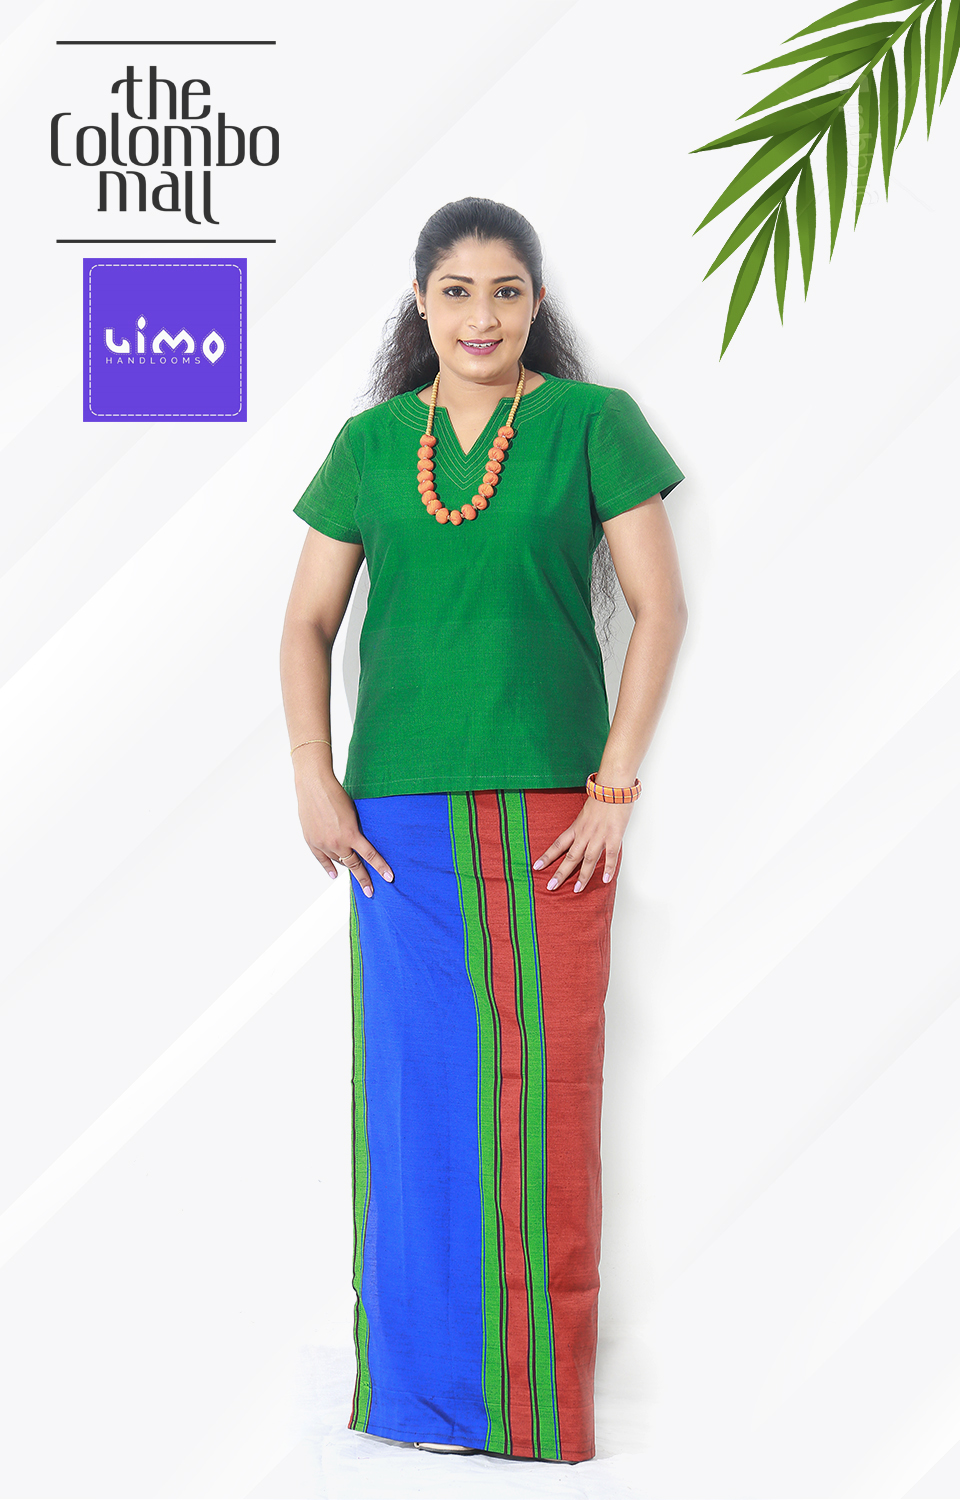 Shamrock Green Handloom Lungi Top Sri Lanka